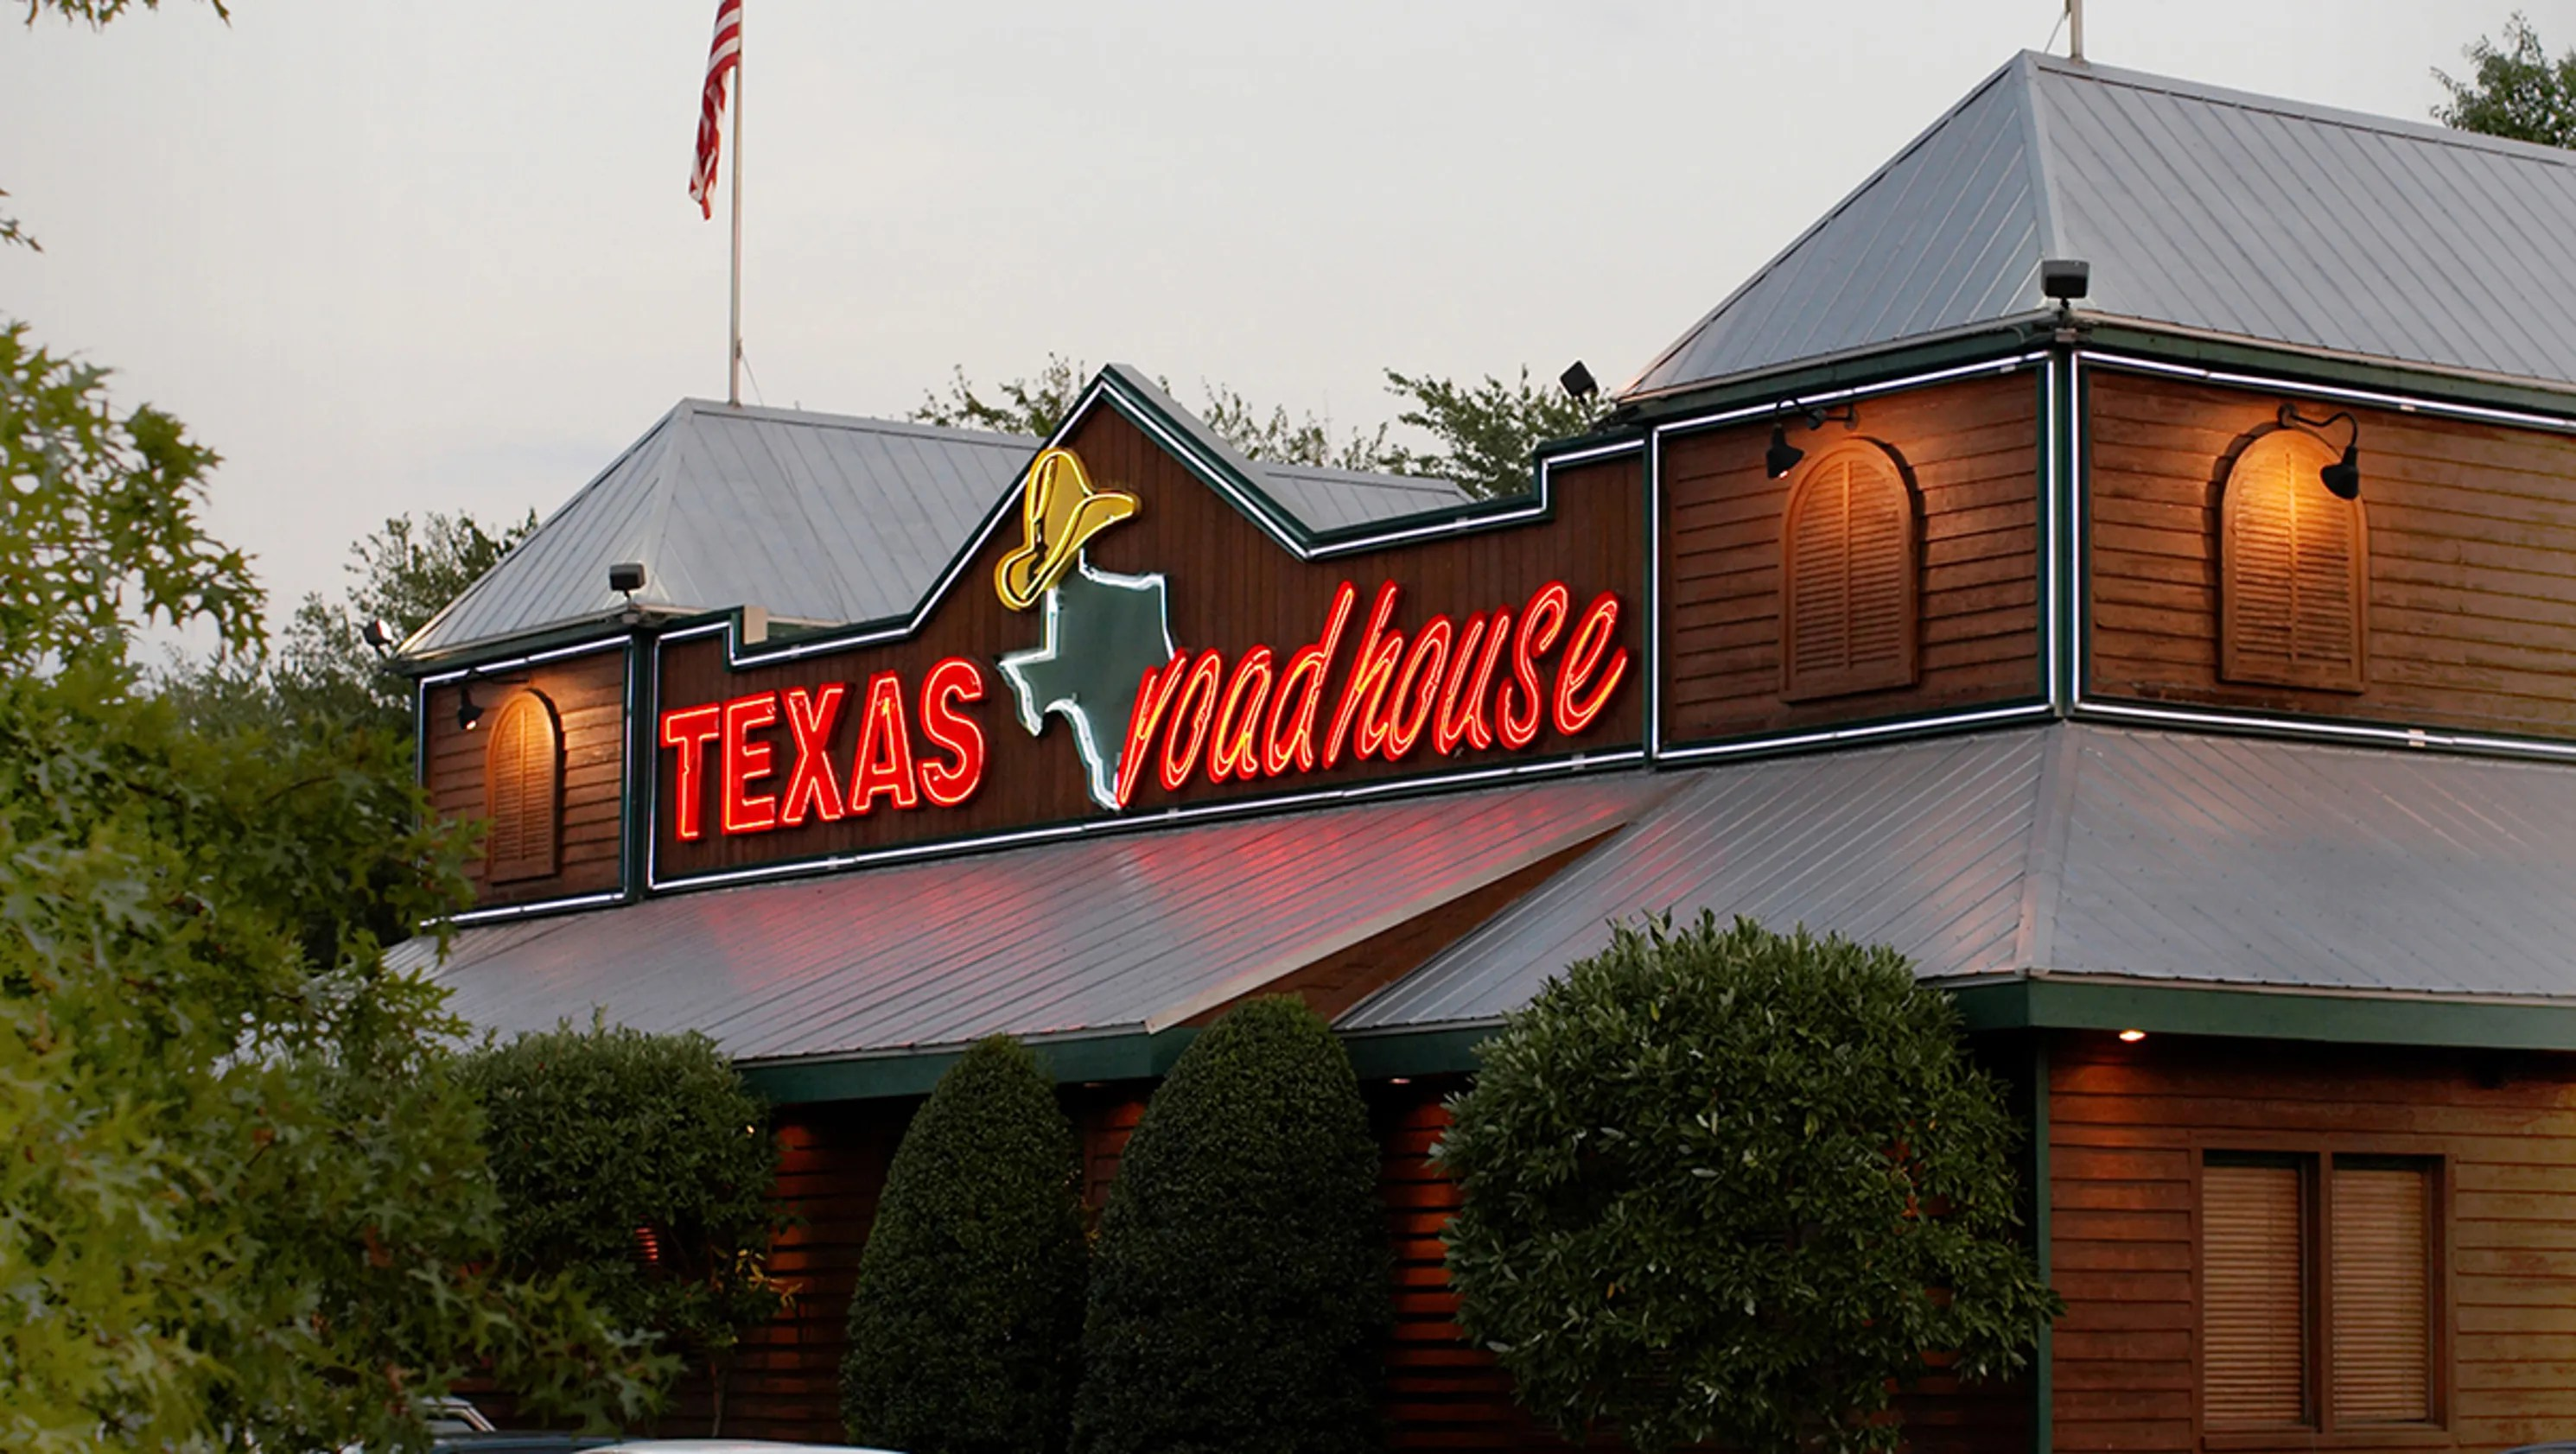 Texas Roadhouse restaurant chain coming to Howell